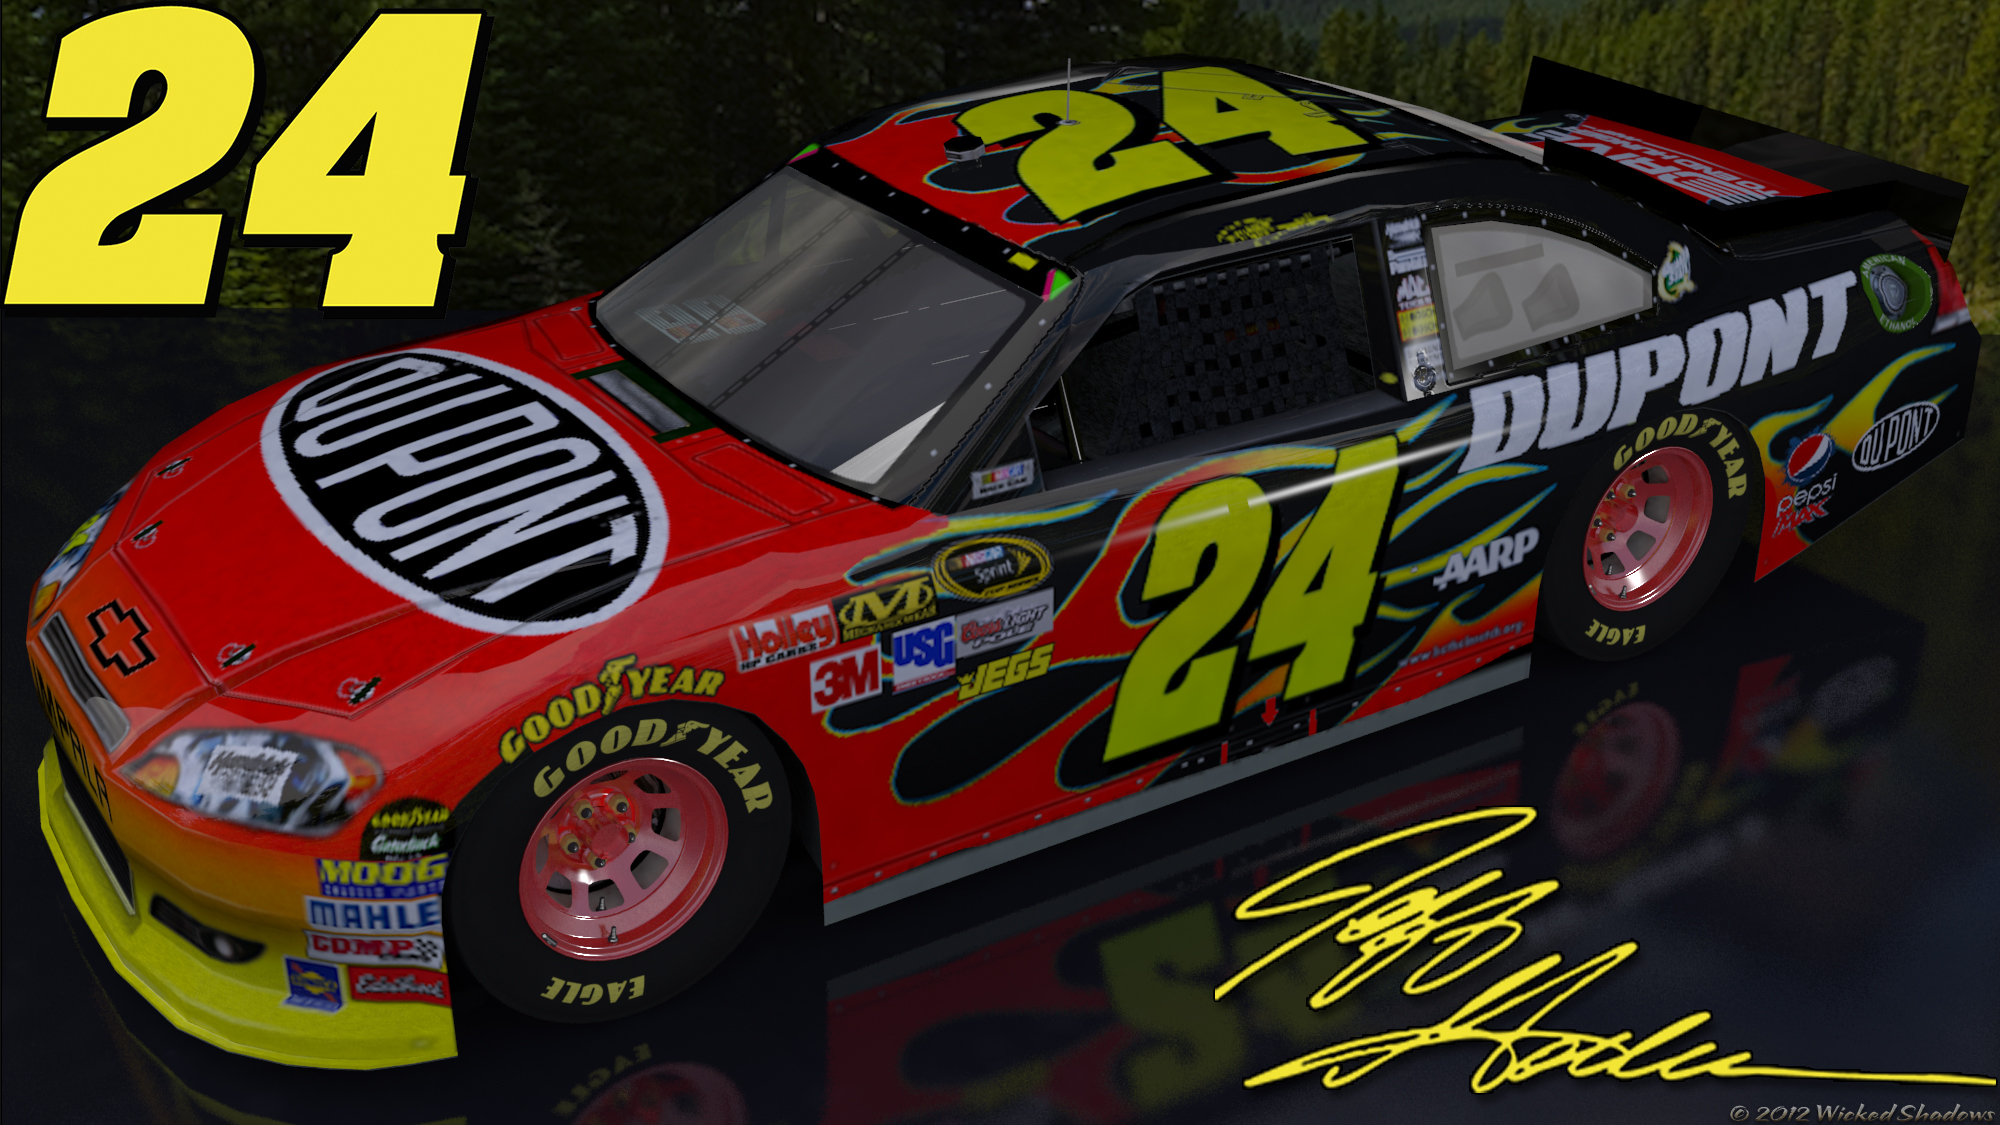 Free Jeff Gordon Wallpaper - WallpaperSafari